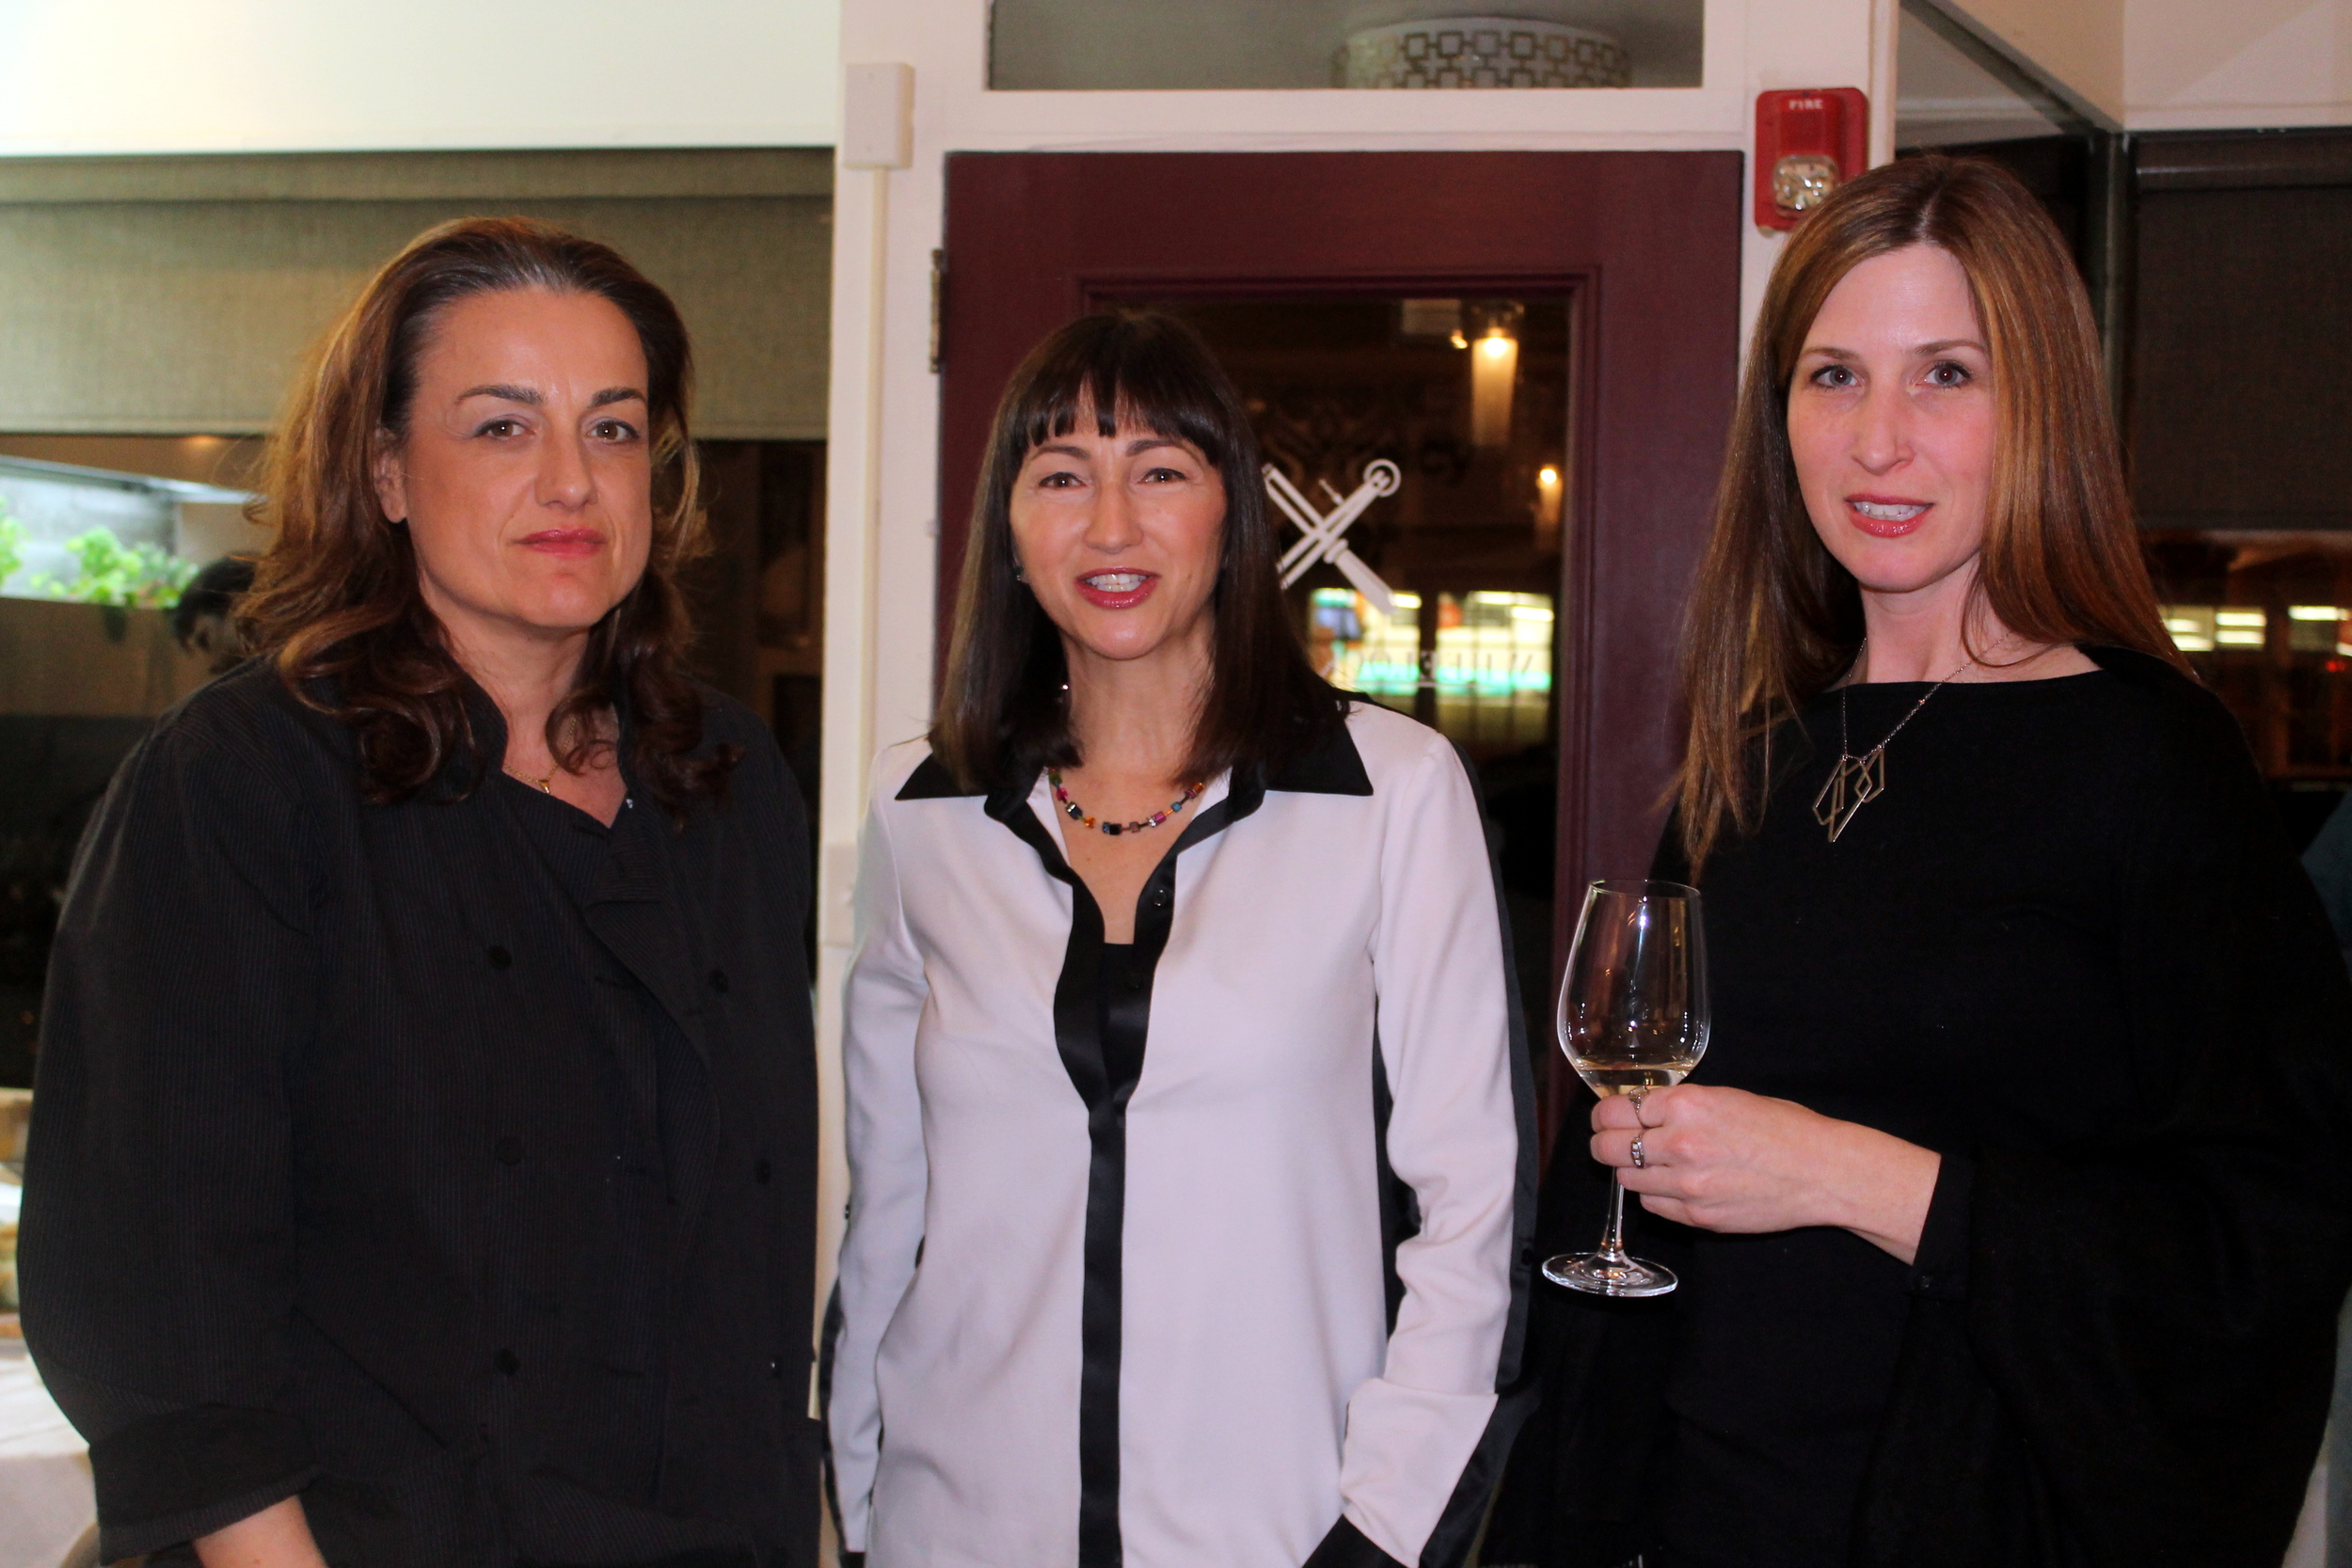 Silvia Baldini, Chef, Strawberry and Sage; Analiese Paik, Owner/Editor, Fairfield Green Food Guide; Jennifer Young, Wheelock Maidique